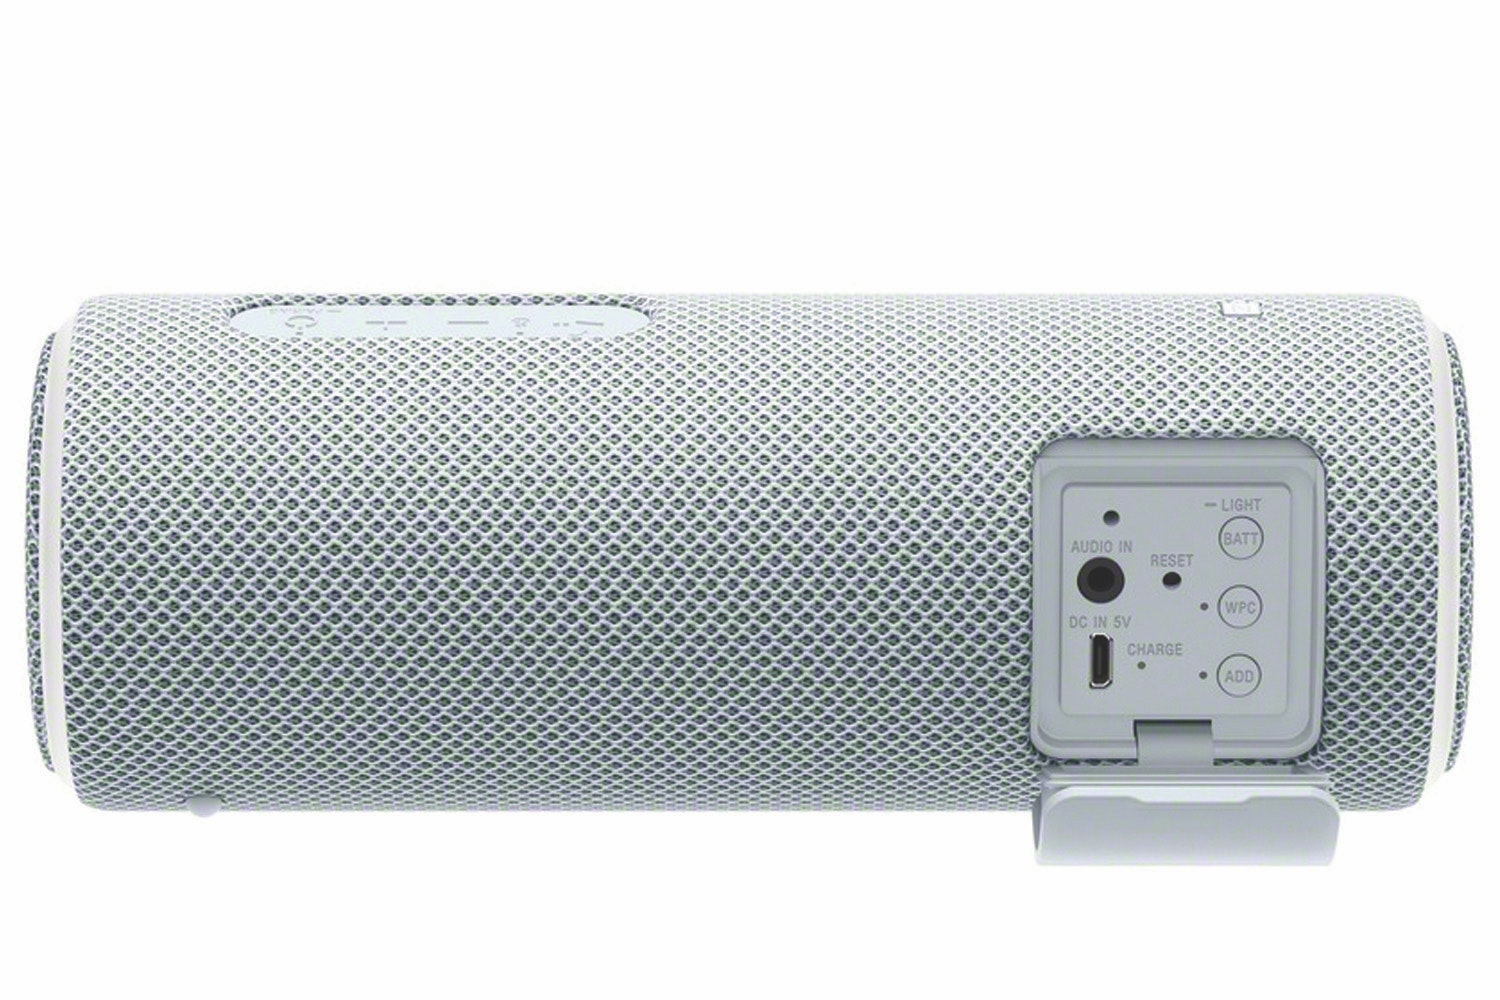 Sony SRSXB21W.CE7 Portable Waterproof Speaker with EXTRA BASS and 12 Hours Battery Life